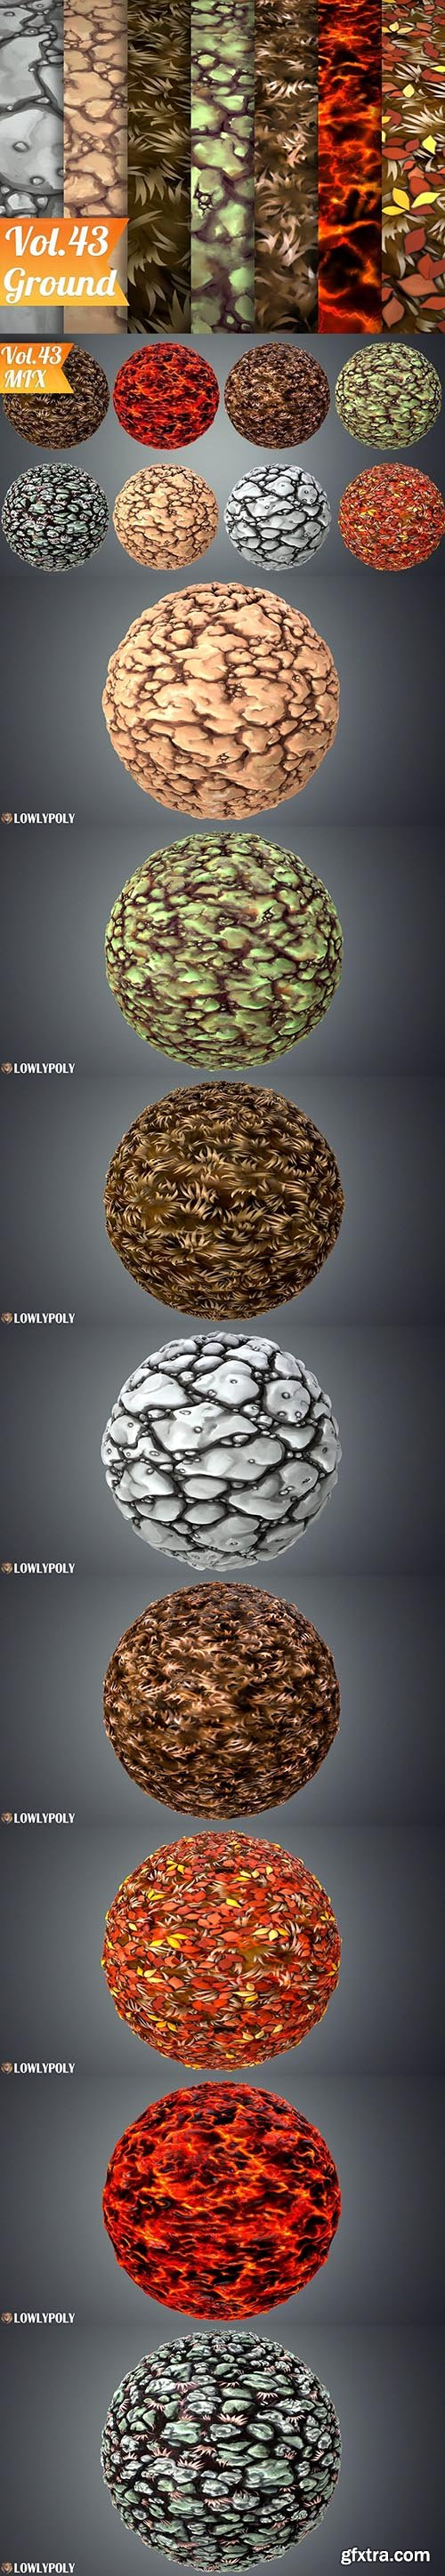 Cgtrader - Stylized Ground Vol 43 - Hand Painted Texture Pack Texture